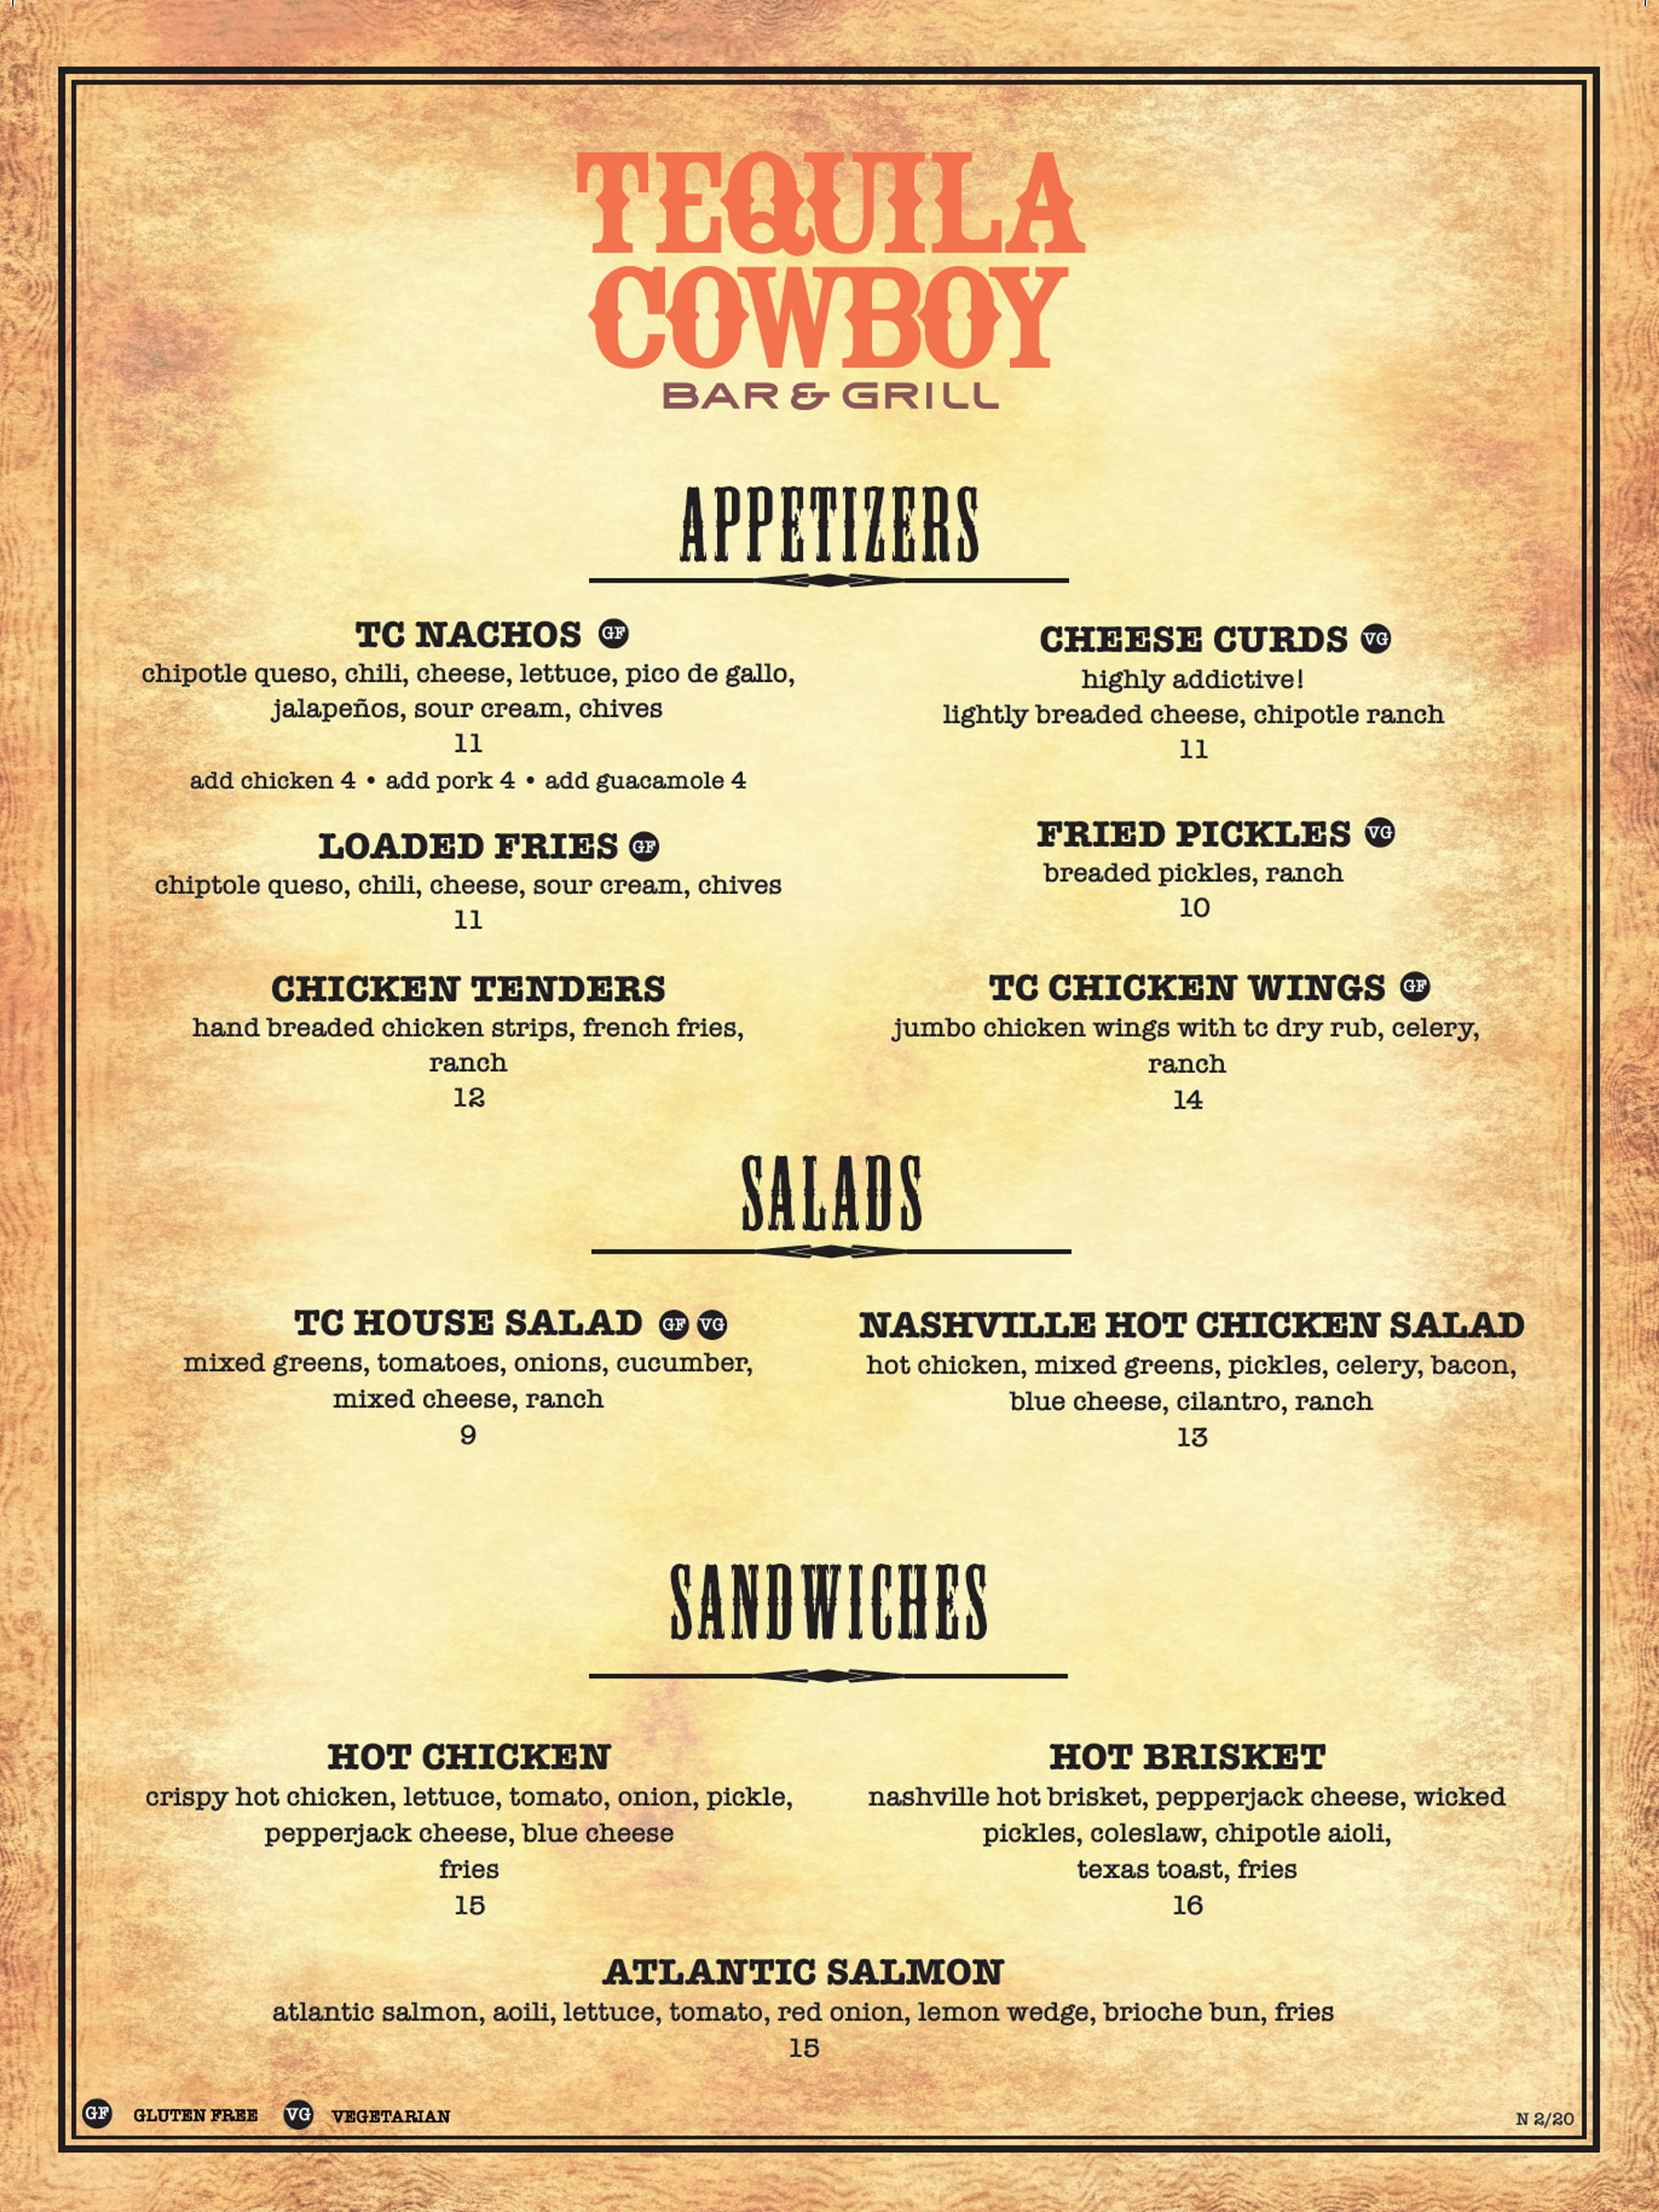 Tequila Cowboy Apps